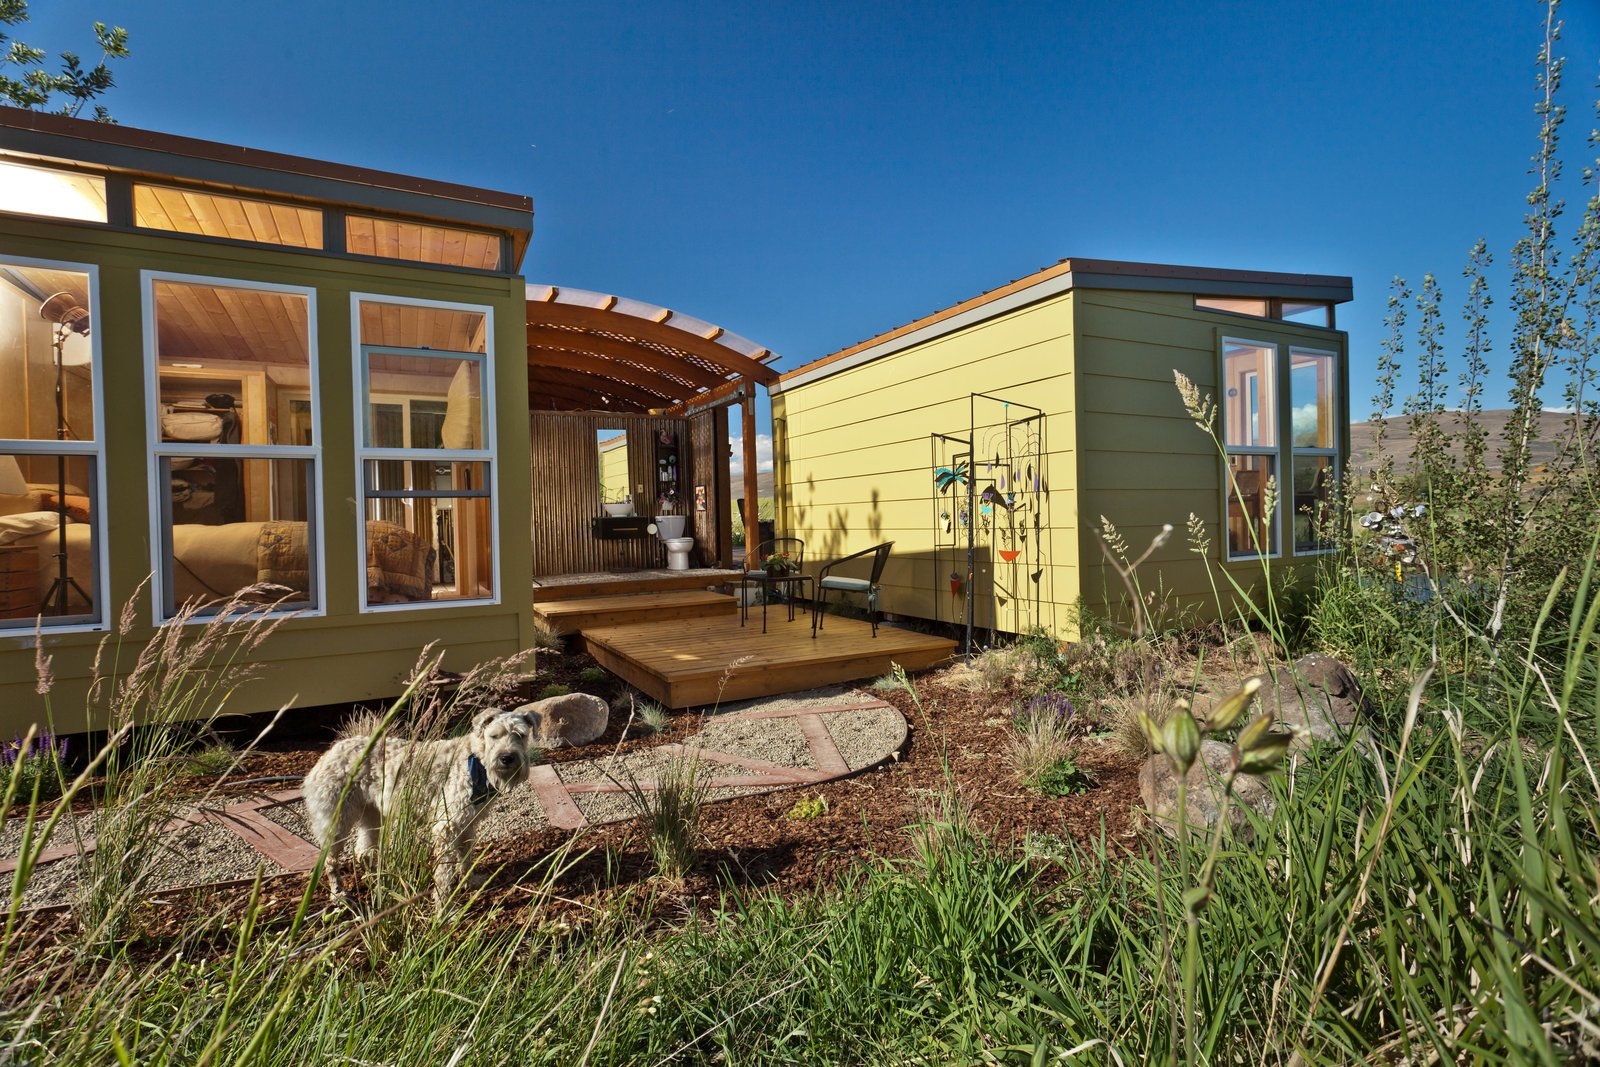 Modern-Shed Ellensburg Farm Shed Complex by Modern-Shed, Inc